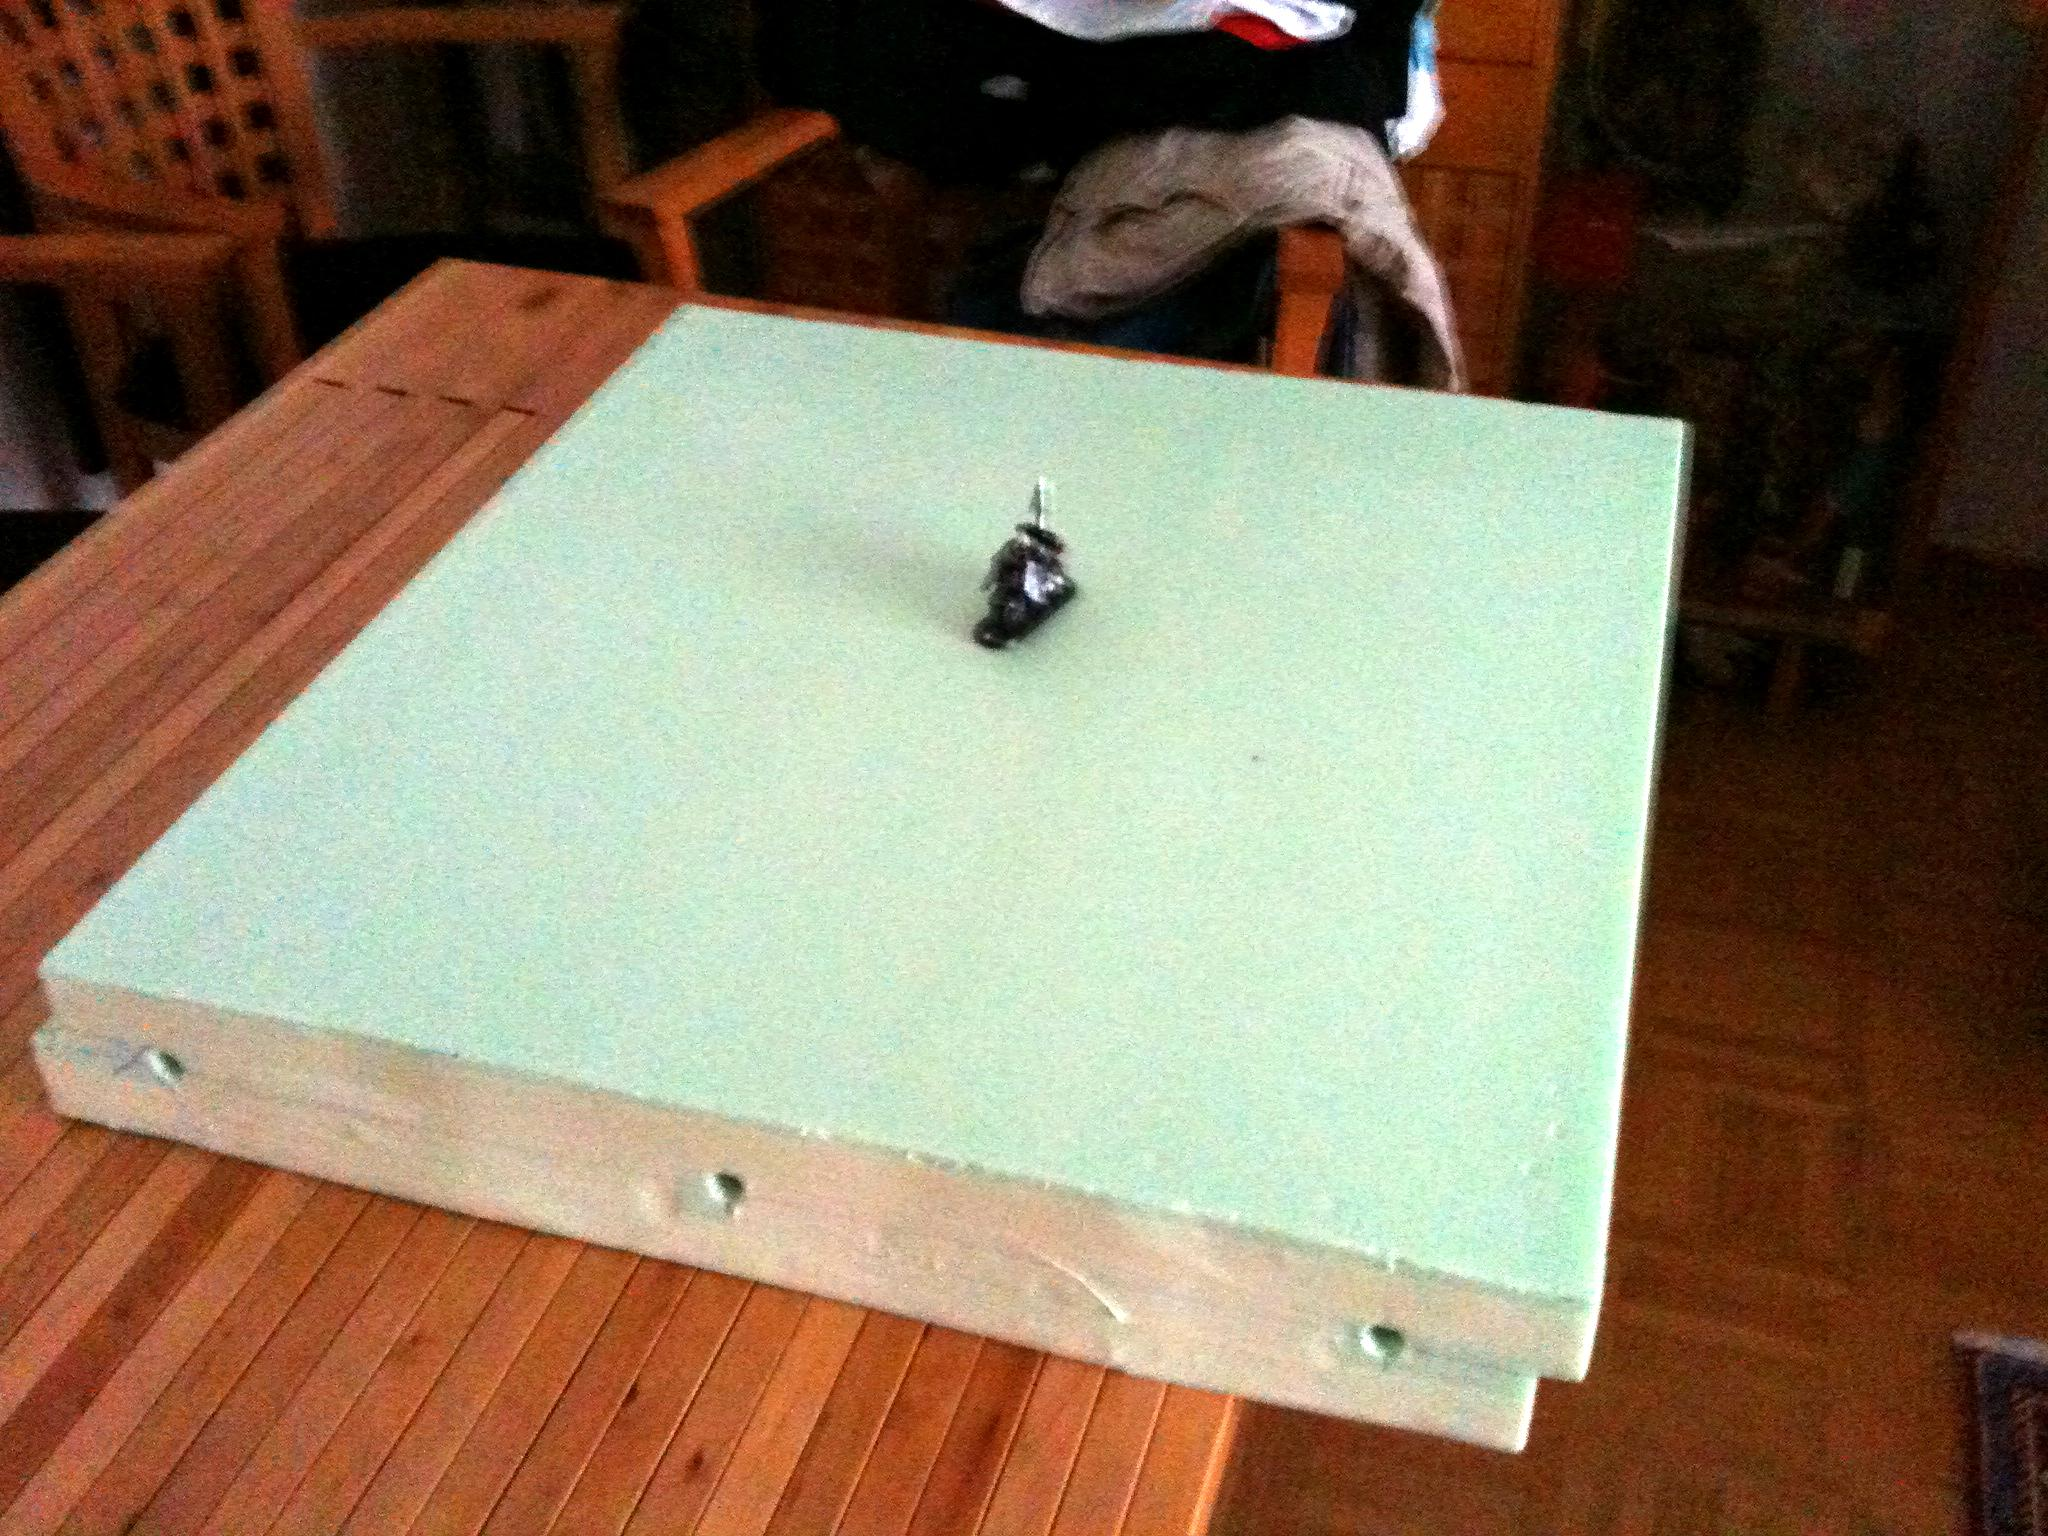 Disable, Game Table, Work In Progress